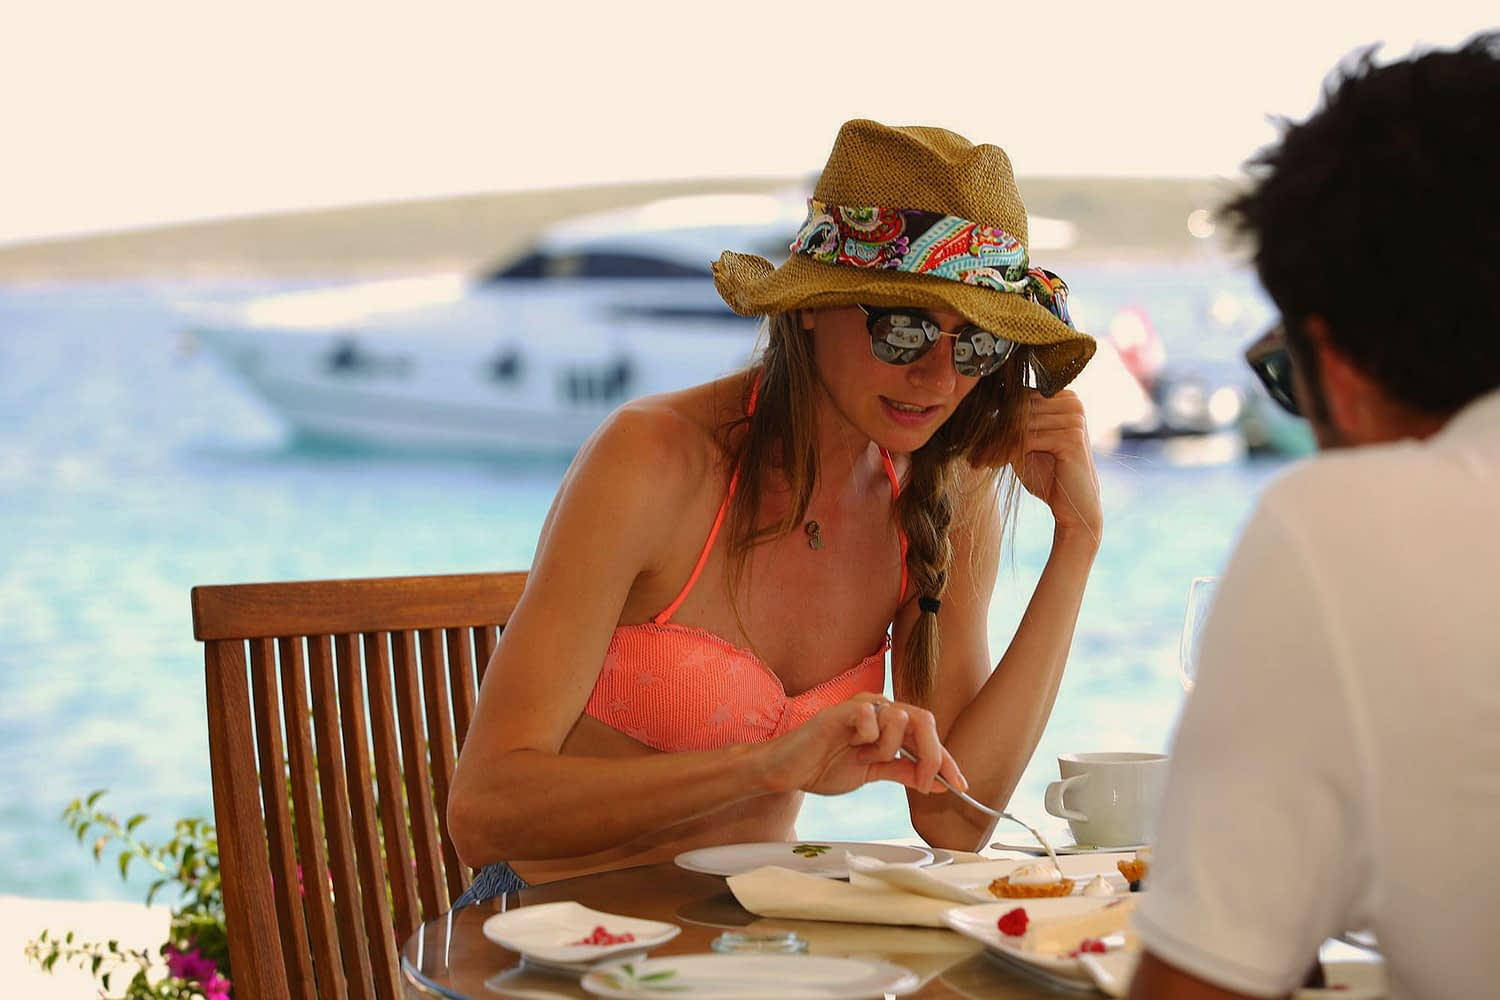 Archipelago Tours Custom Made Tours Exclusive Charter photo of a women eating desert